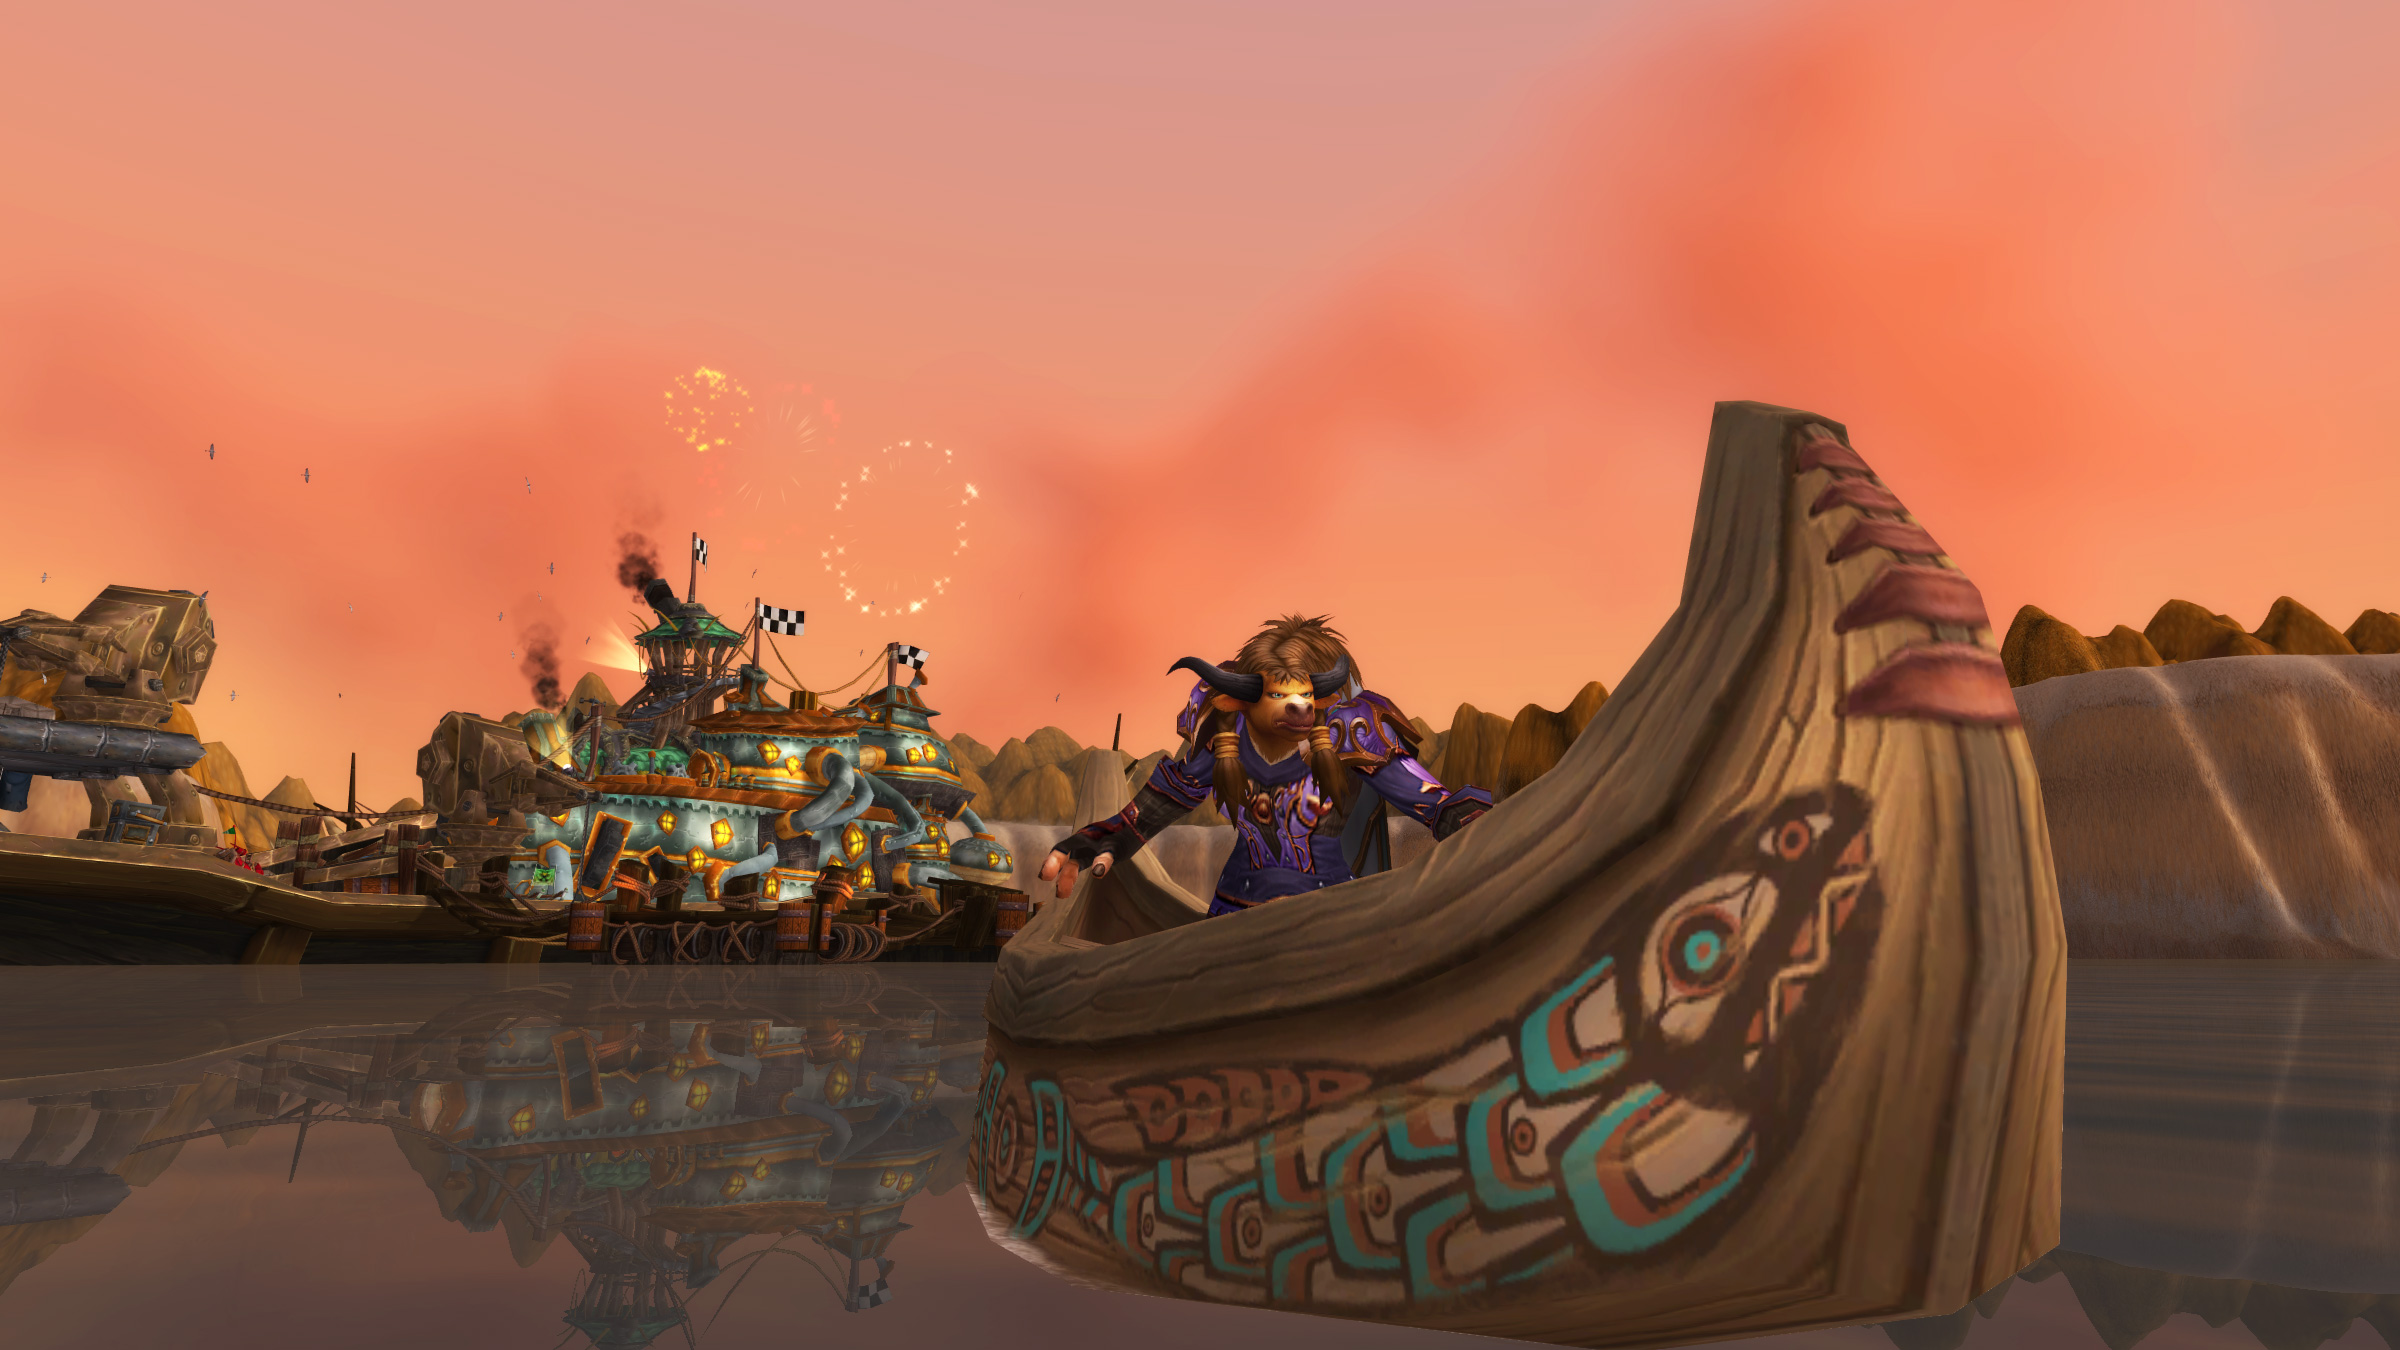 The Thousand Boat Bash Micro Holiday has Arrived! June 6-8